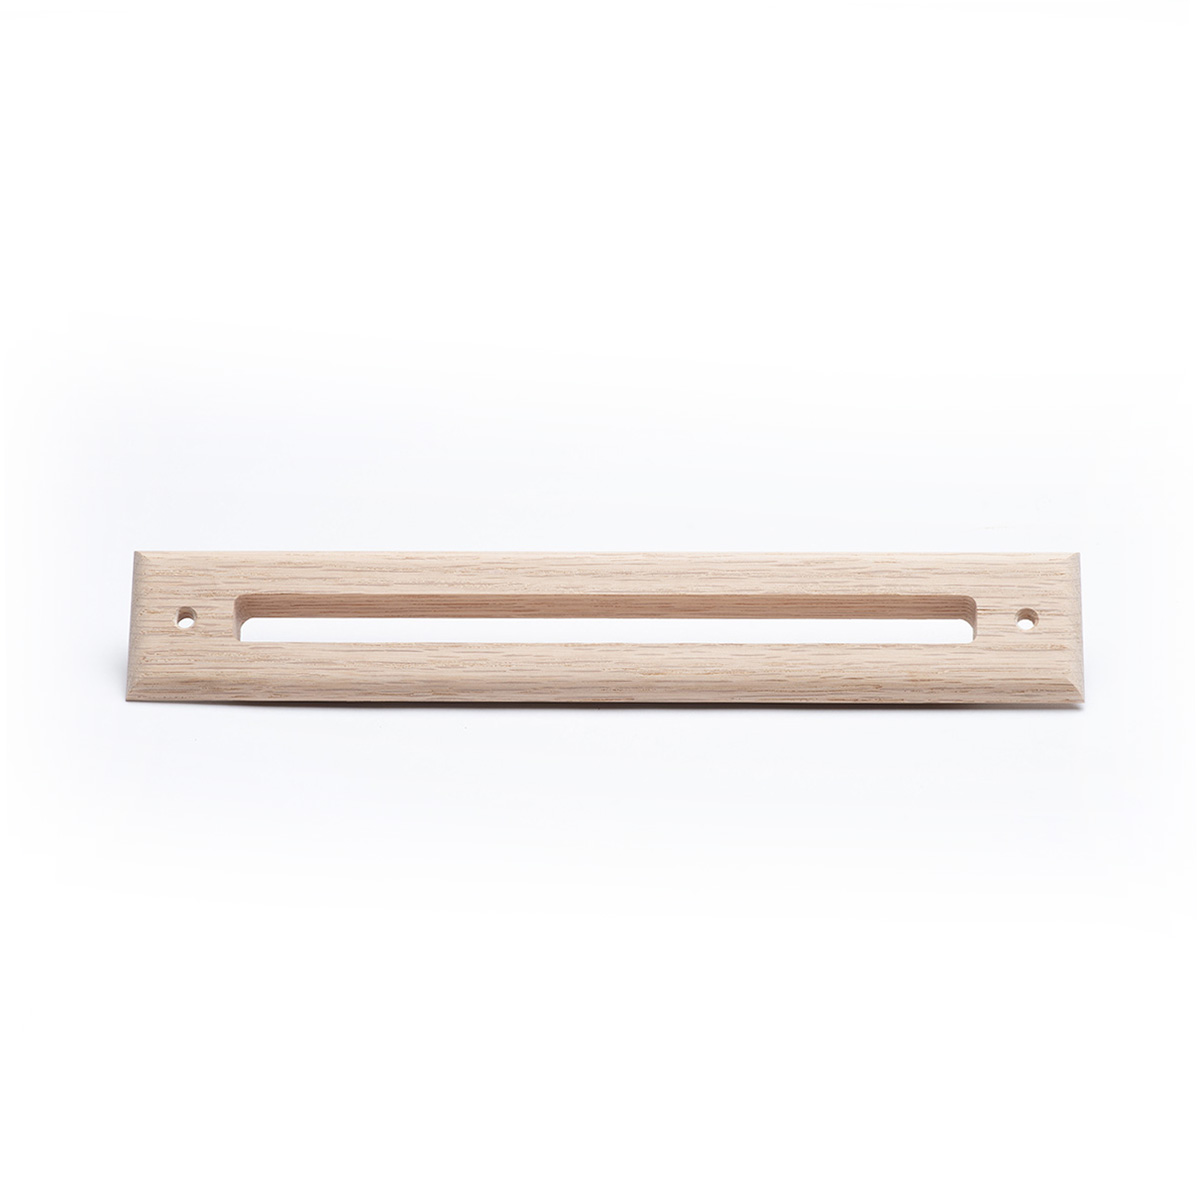 Slotted Outlet Face Plate, Wood, Red Oak, UPC-67/68